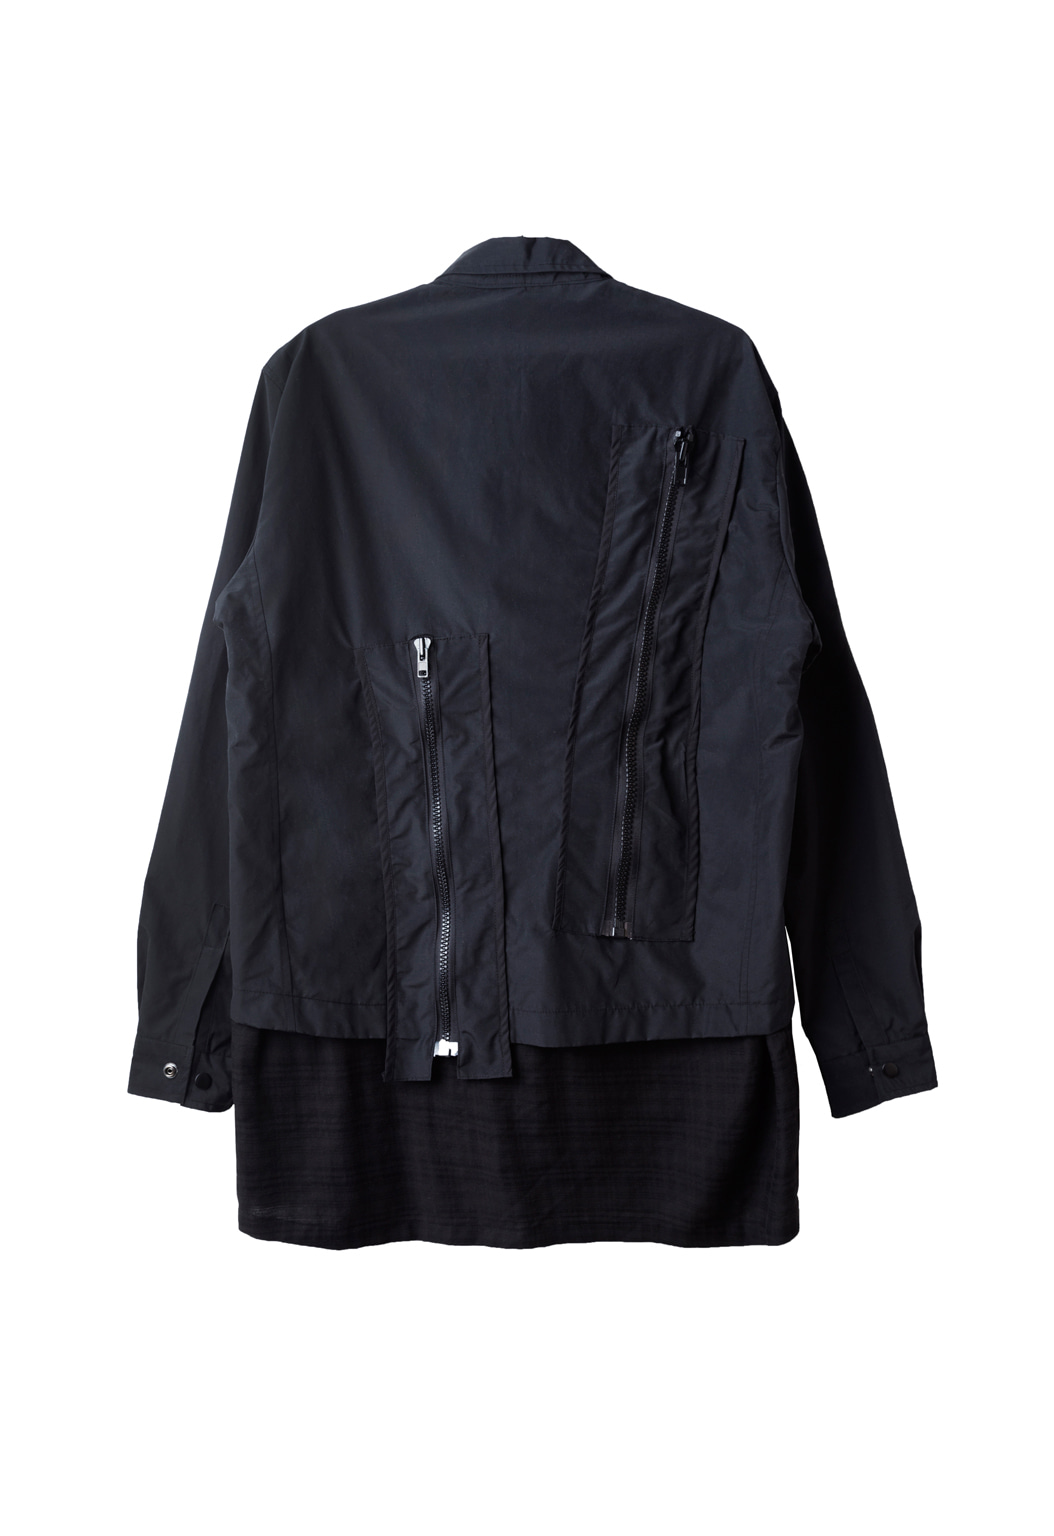 zipper shirts jacket